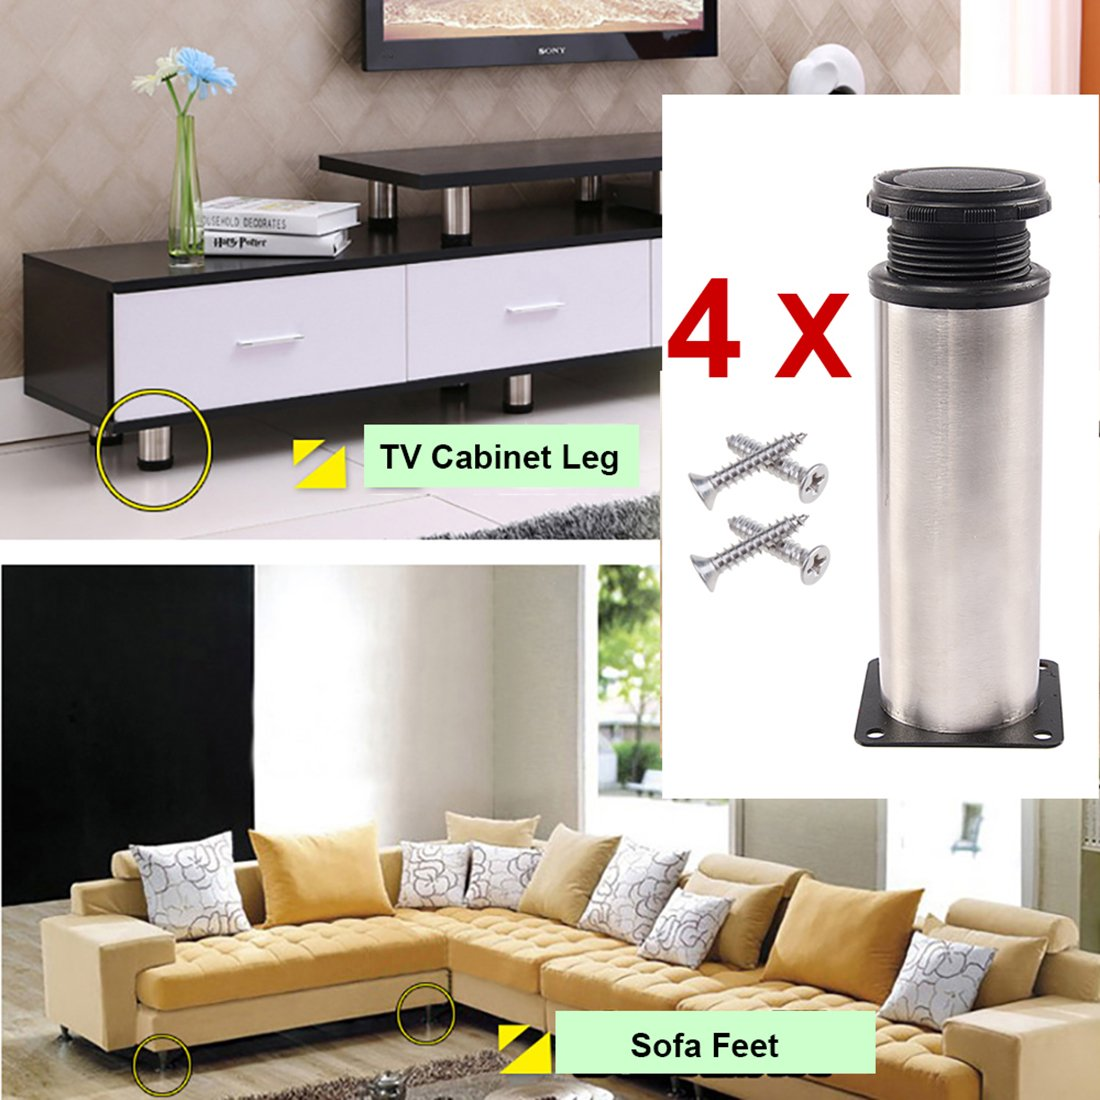 Drenky 4 PCS 200mm Adjustable Metal Legs Bathroom Kitchen Cabinet Feet Round Furniture Legs TV Table Sofa Feet, (200 - 215mm) Height with 16 Screws